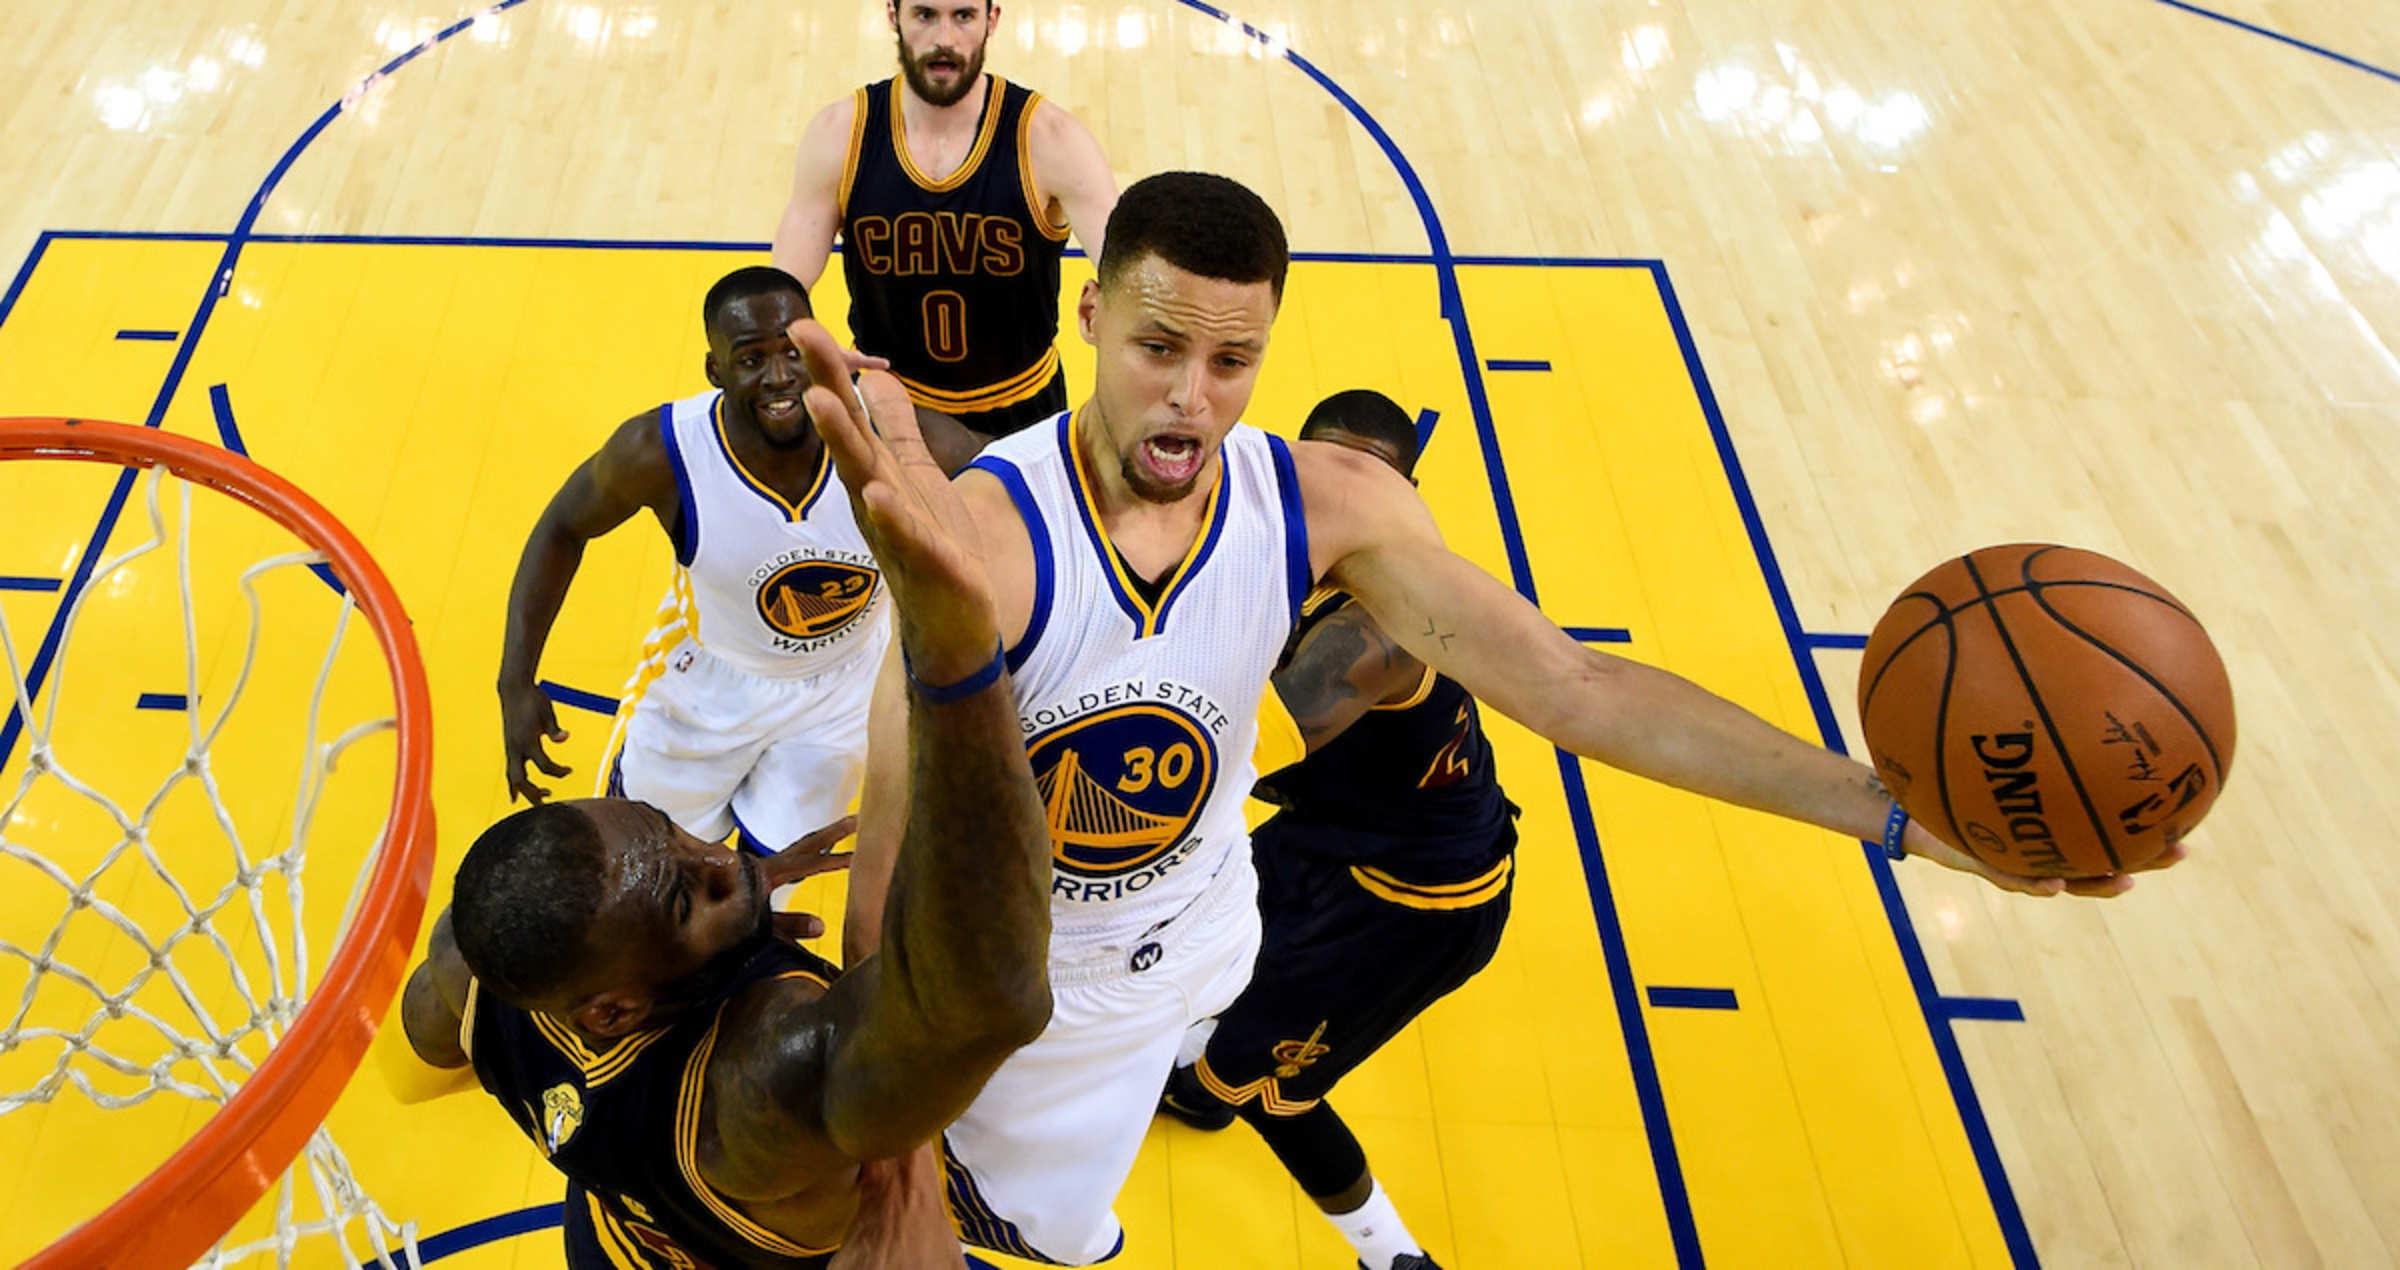 NBA Finals: The Cavs and Warriors meet again | Chicago Bulls